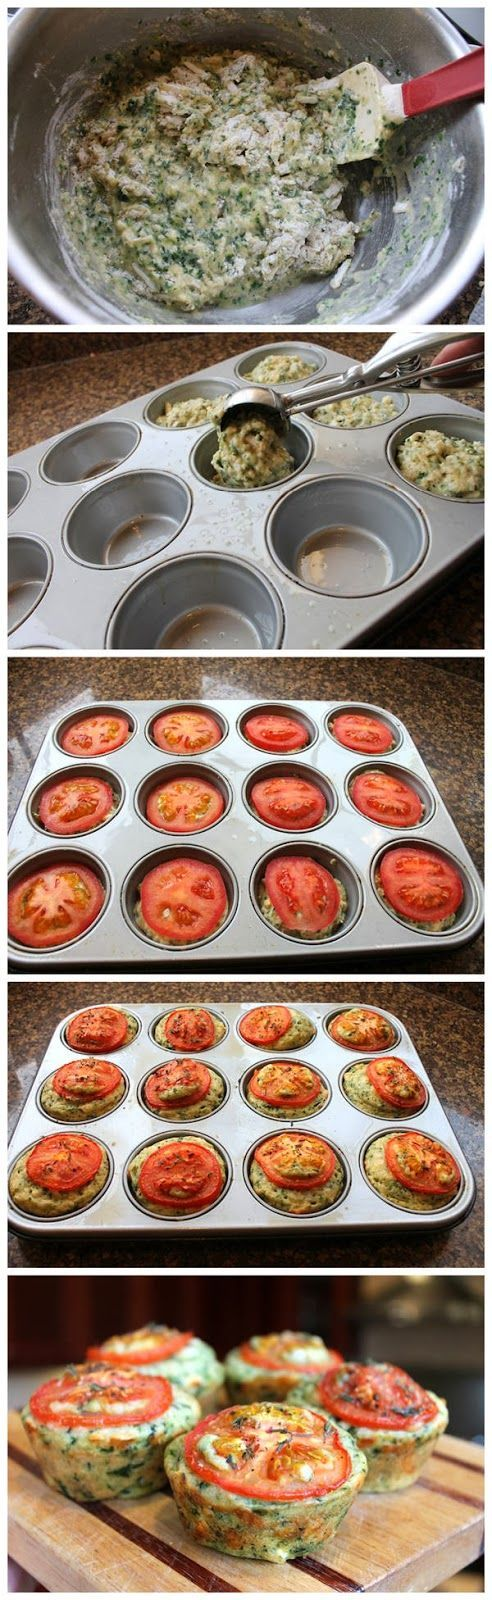 Cheesy Spinach Muffins -- Tthough I think Id rather dice up the tomatos rather than have it all on top :)